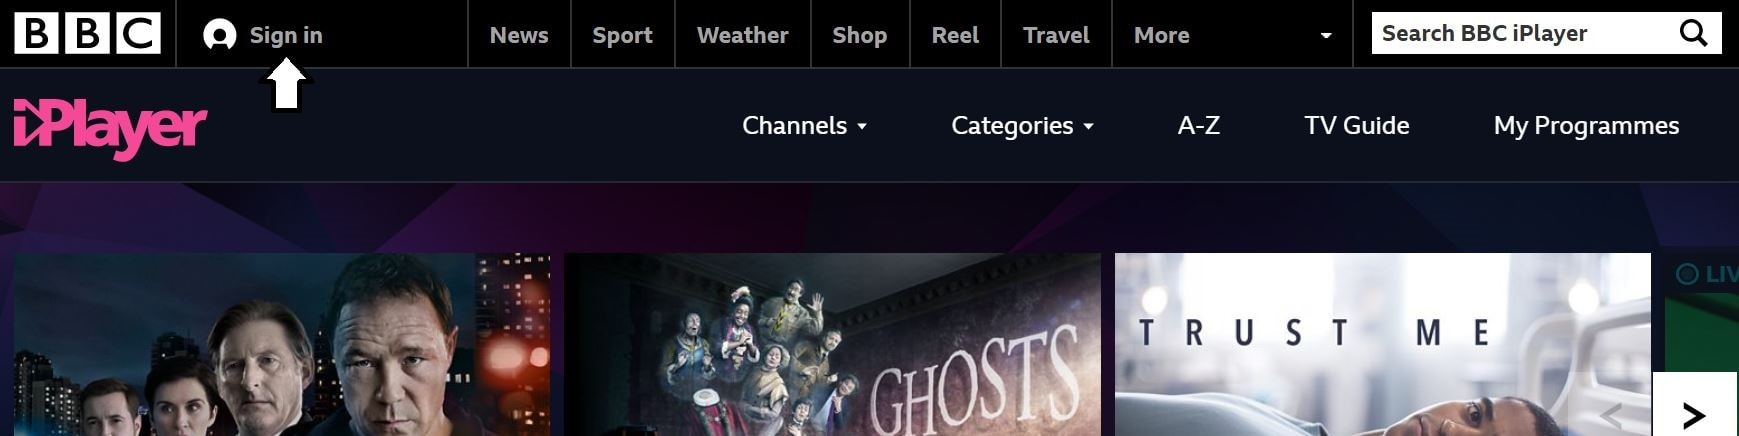 BBC iPlayer sign in